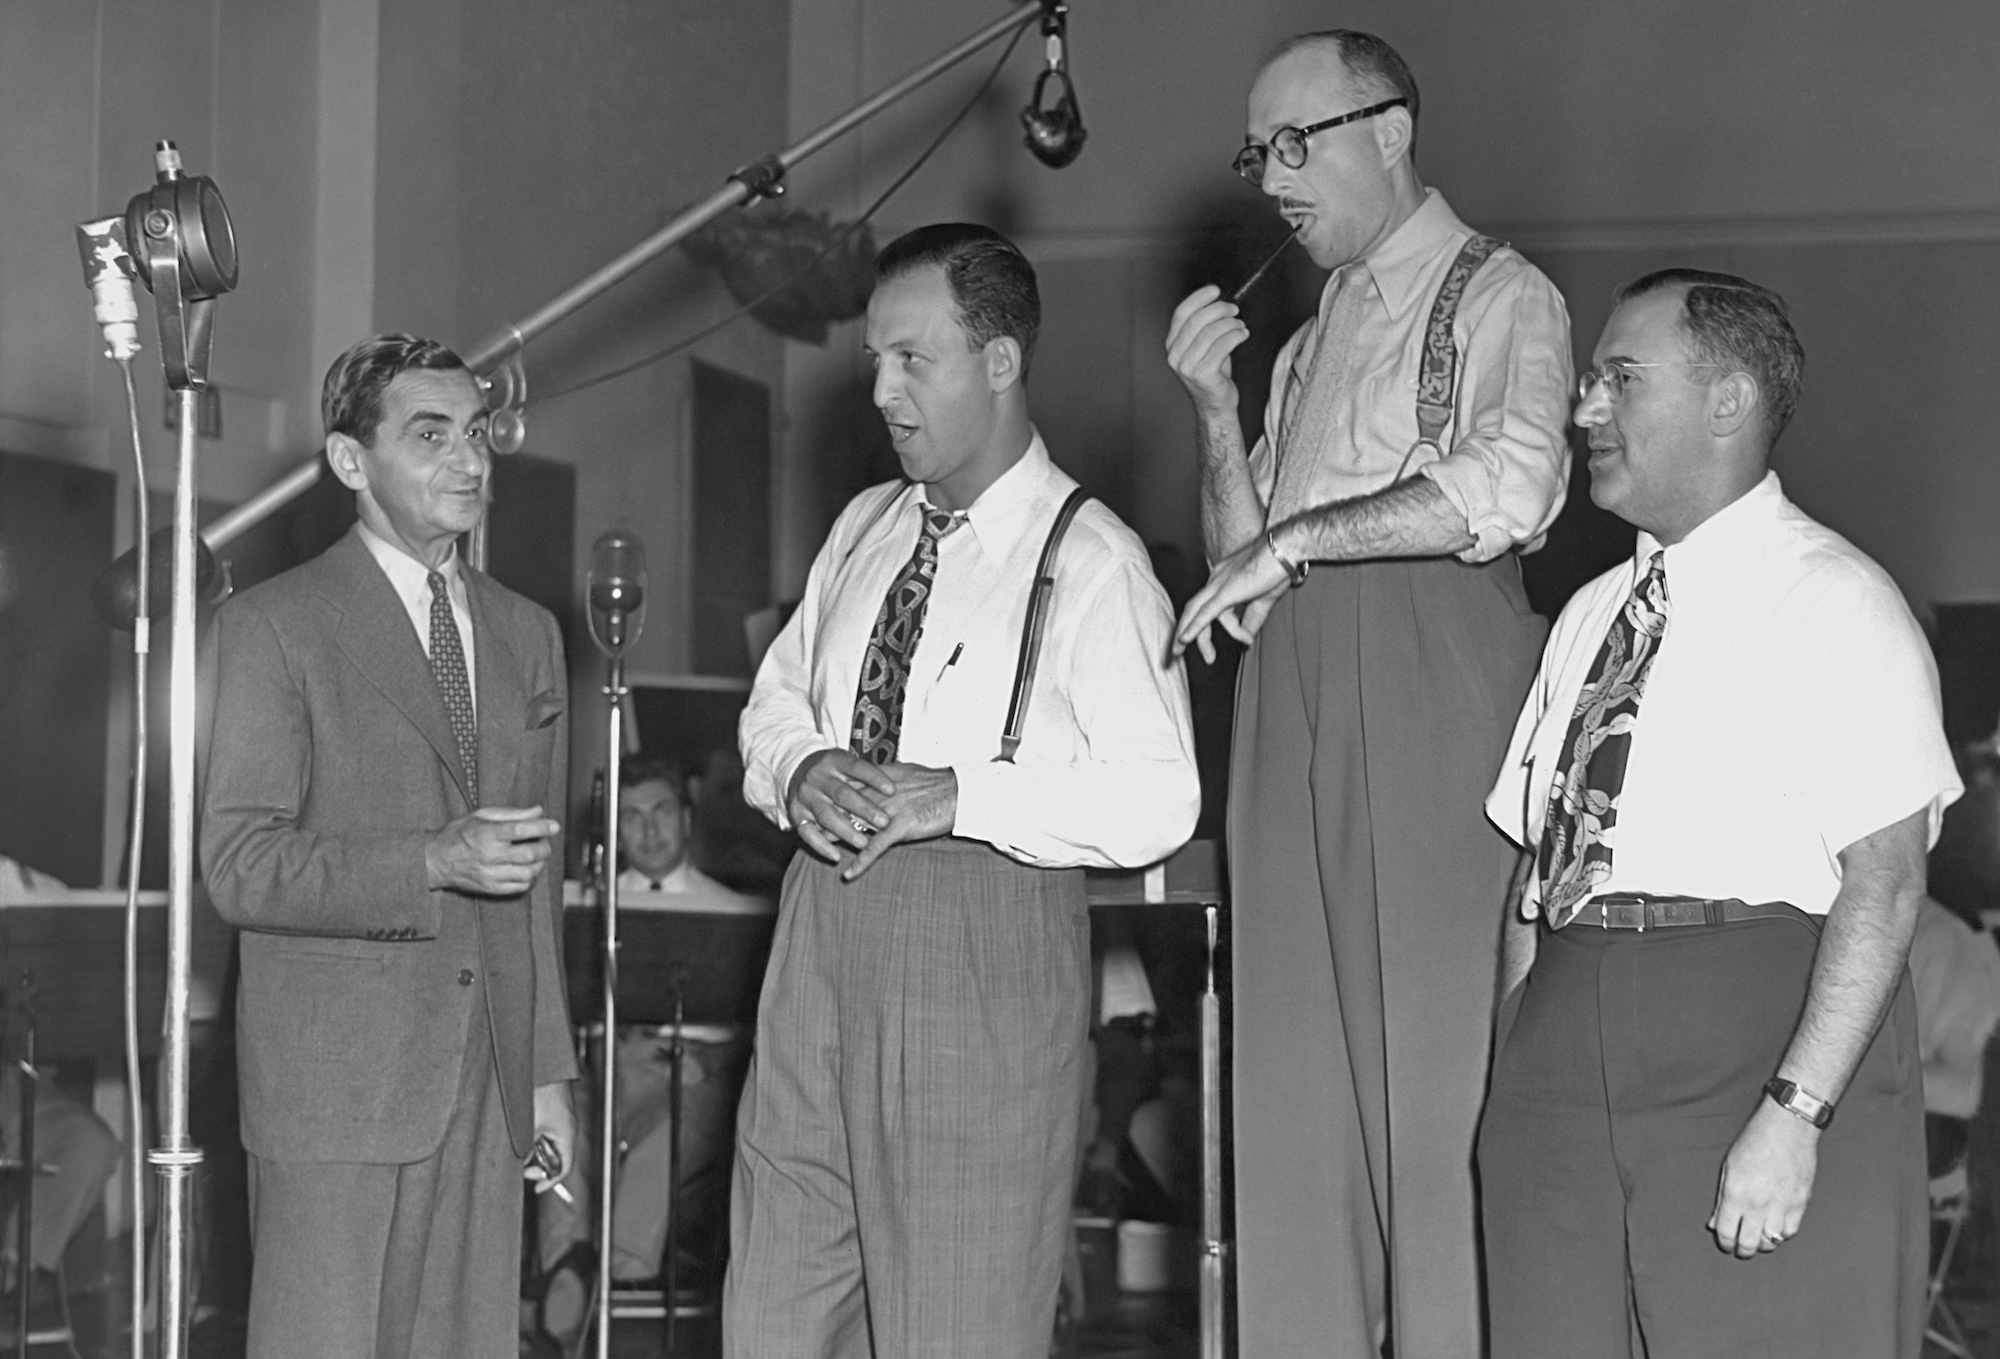 Composer Irving Berlin (1888 Ð 1989) with singer Barry Wood (1909 - 1970) and orchestra leader Ray Bloch (1902 - 1982) recording a song in the 1940's. (Photo by Archive Photos/Getty Images)